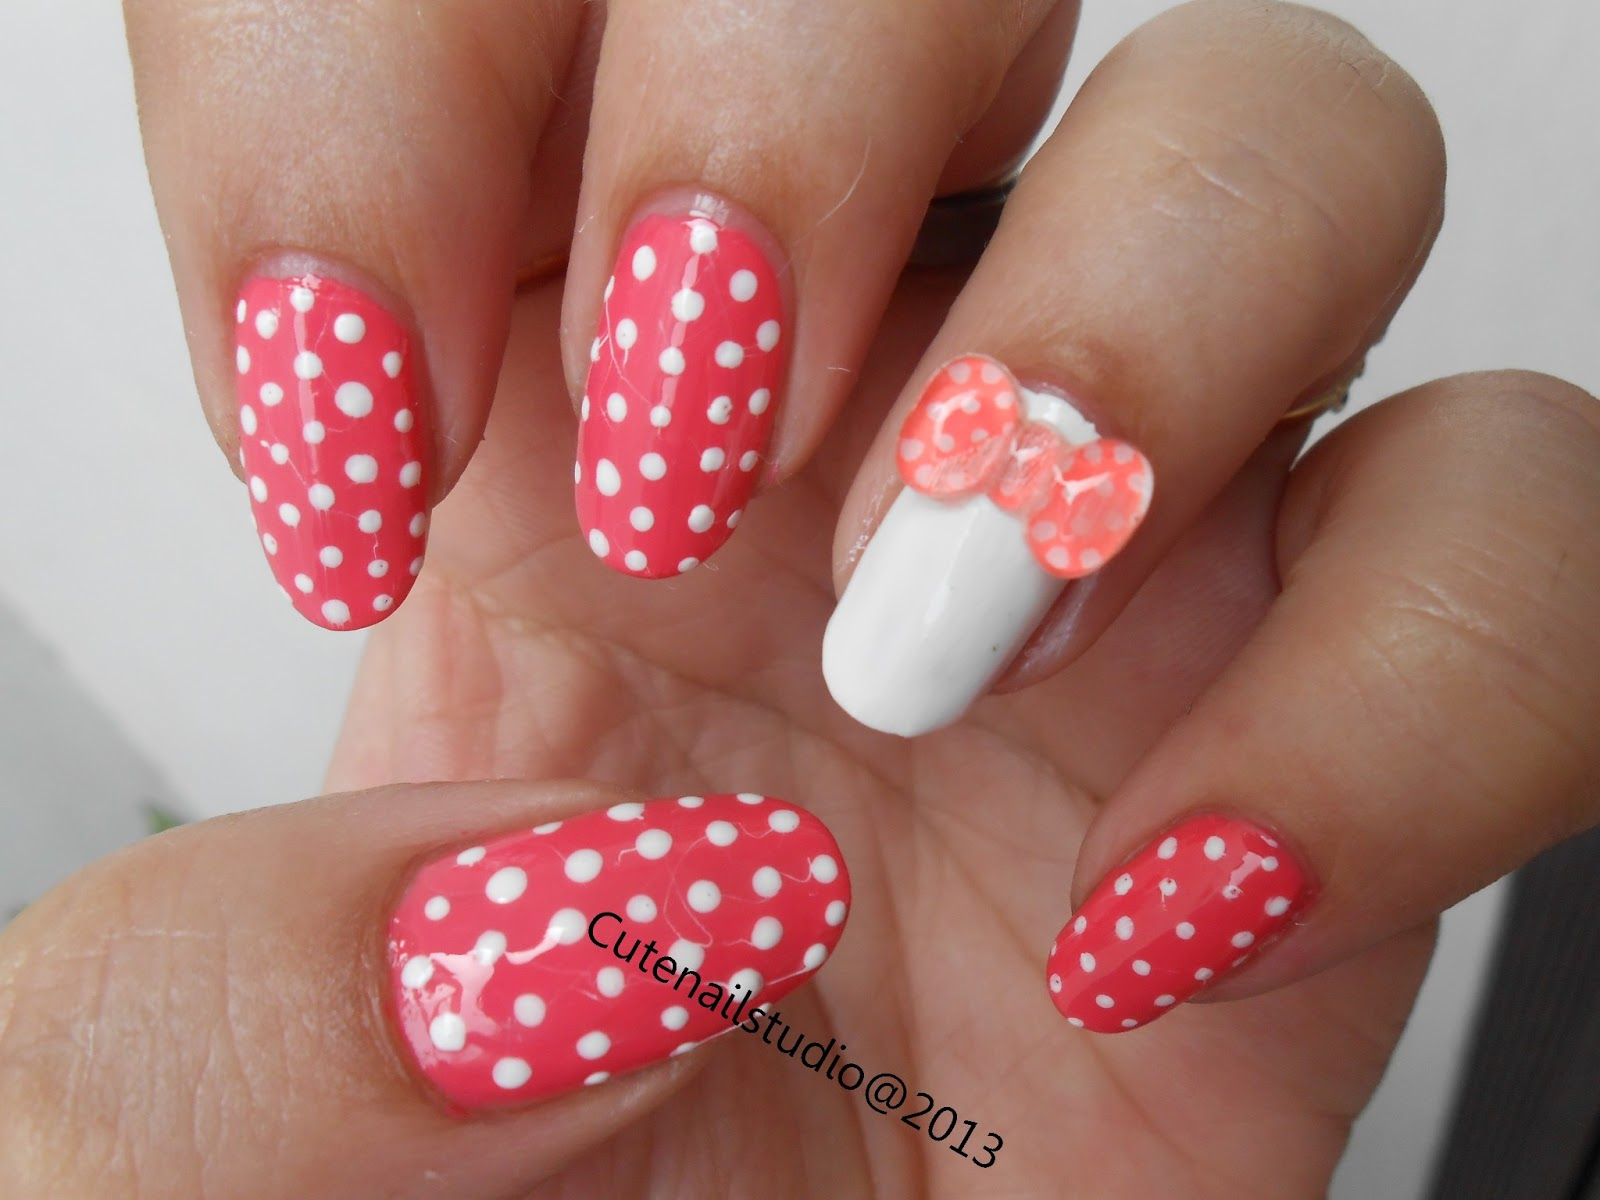 28 impressive 3d bow nails ledufa extraordinary recently entered into fashion 3d effects on nails such as modeling all sorts of bows and figurines look at the photo a delicate and unusual prinsesfo Image collections